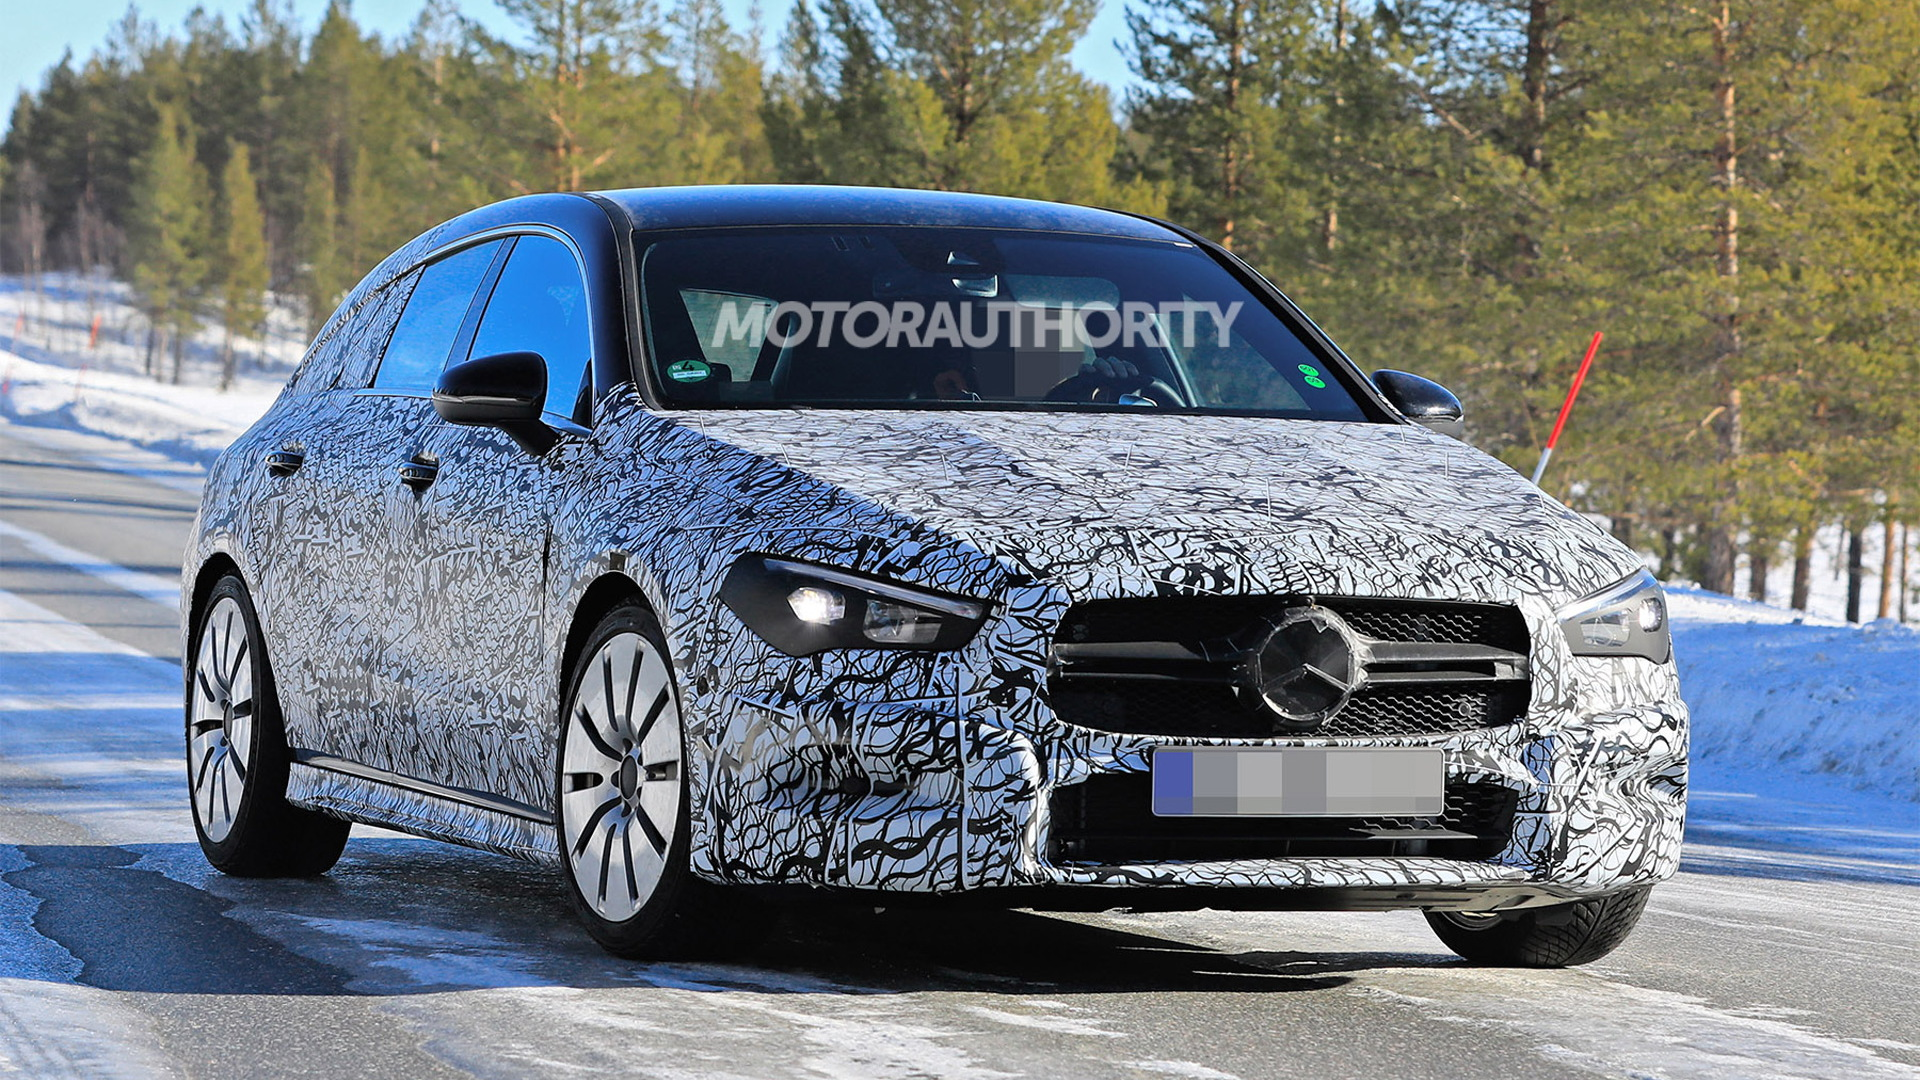 2020 Mercedes-AMG CLA35 Shooting Brake spy shots - Image via S. Baldauf/SB-Medien